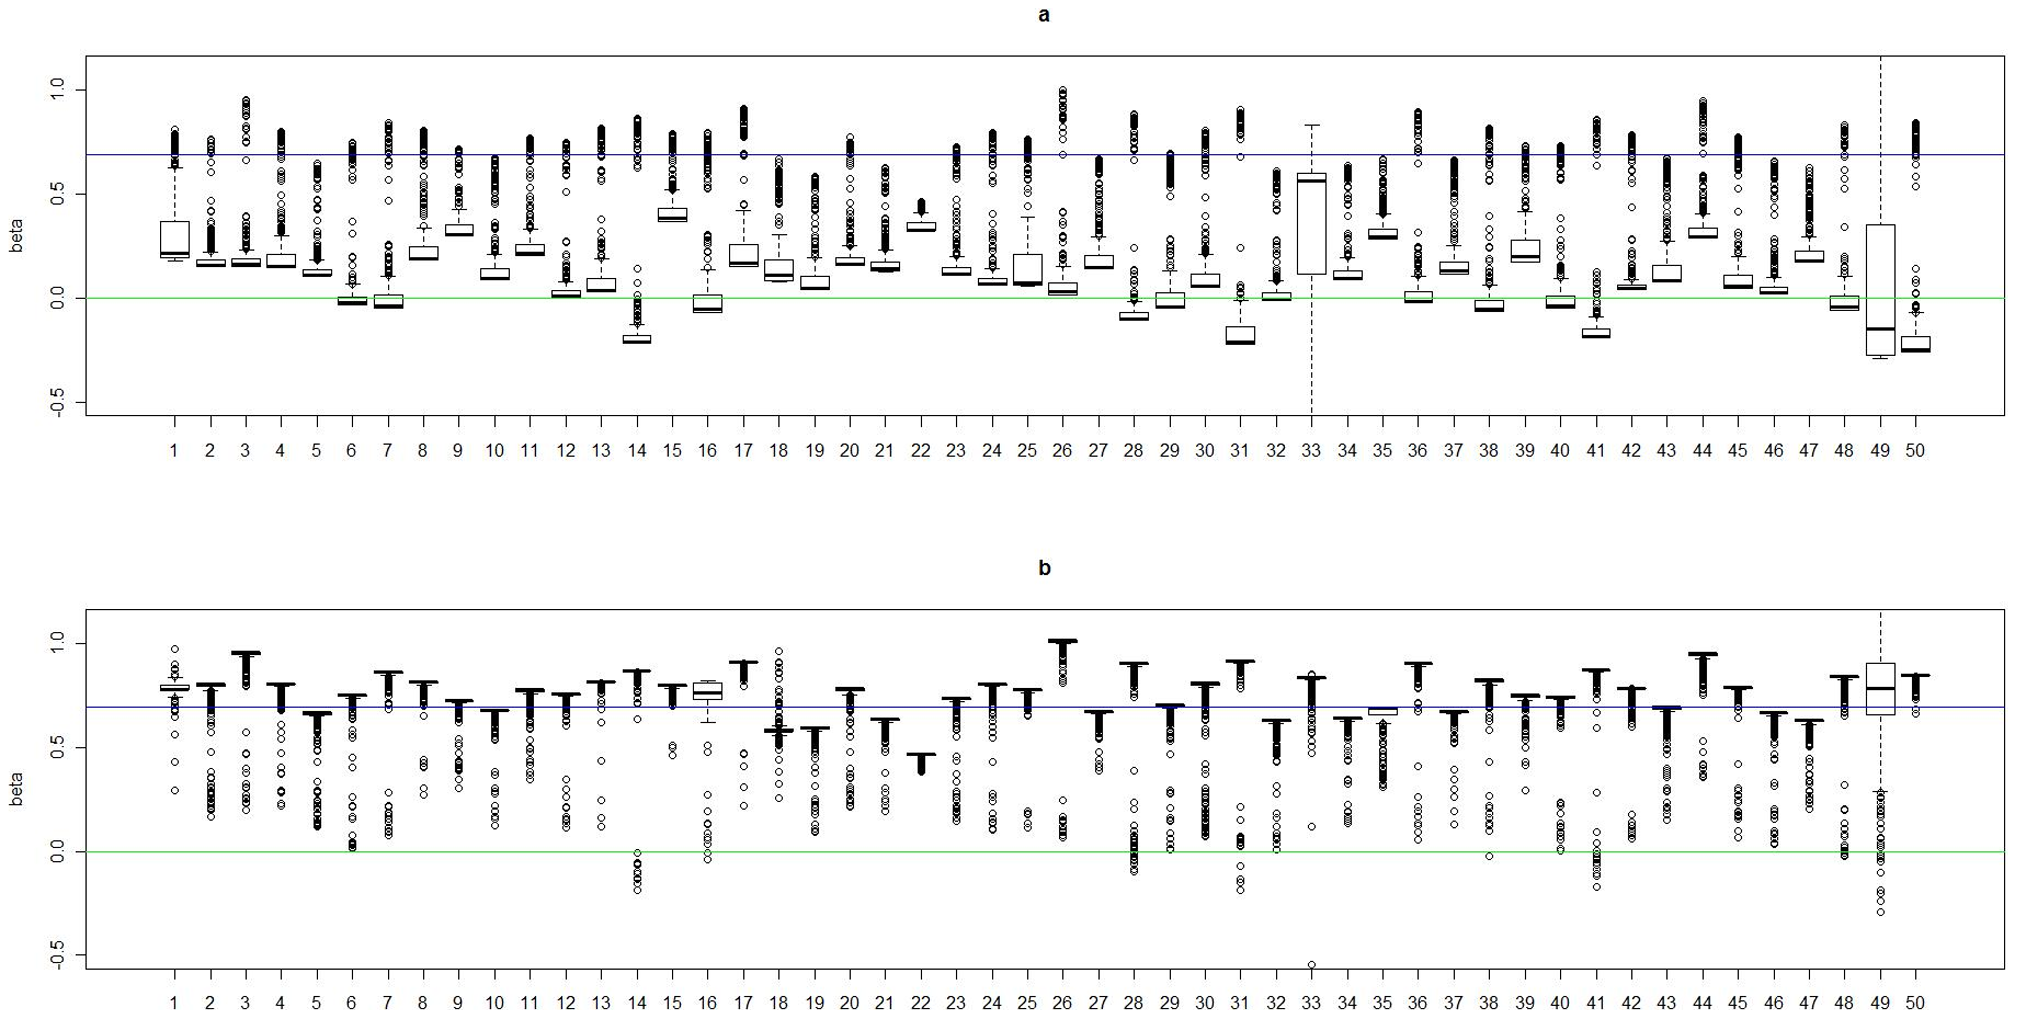 Boxplots of the posterior medians of the log odds ratio () for subjects within each true cluster from each of 50 datasets simulated under the model .